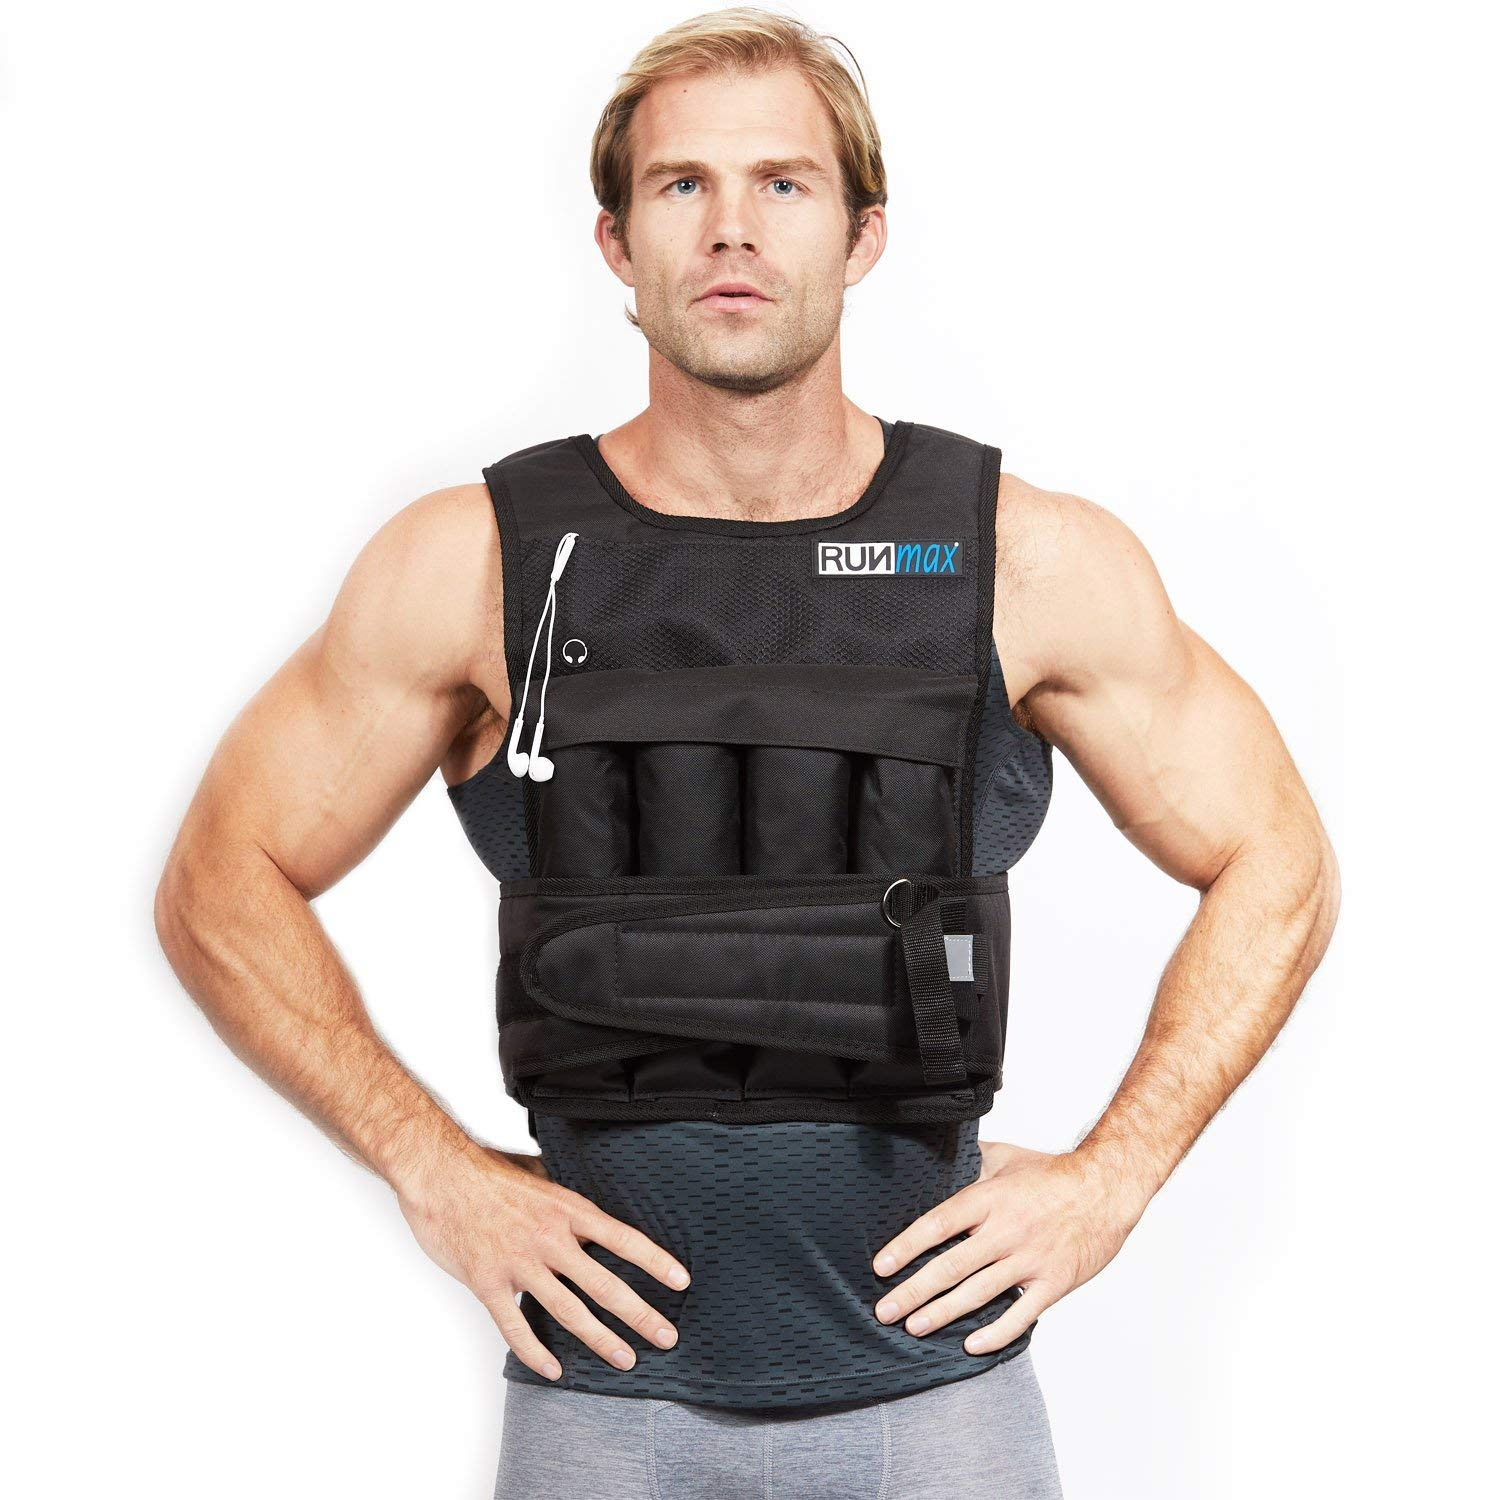 RUNFast Pro Weighted Vest 12lbs-60lbs (with Shoulder Pads, 12 LB) by RUNmax (Image #1)